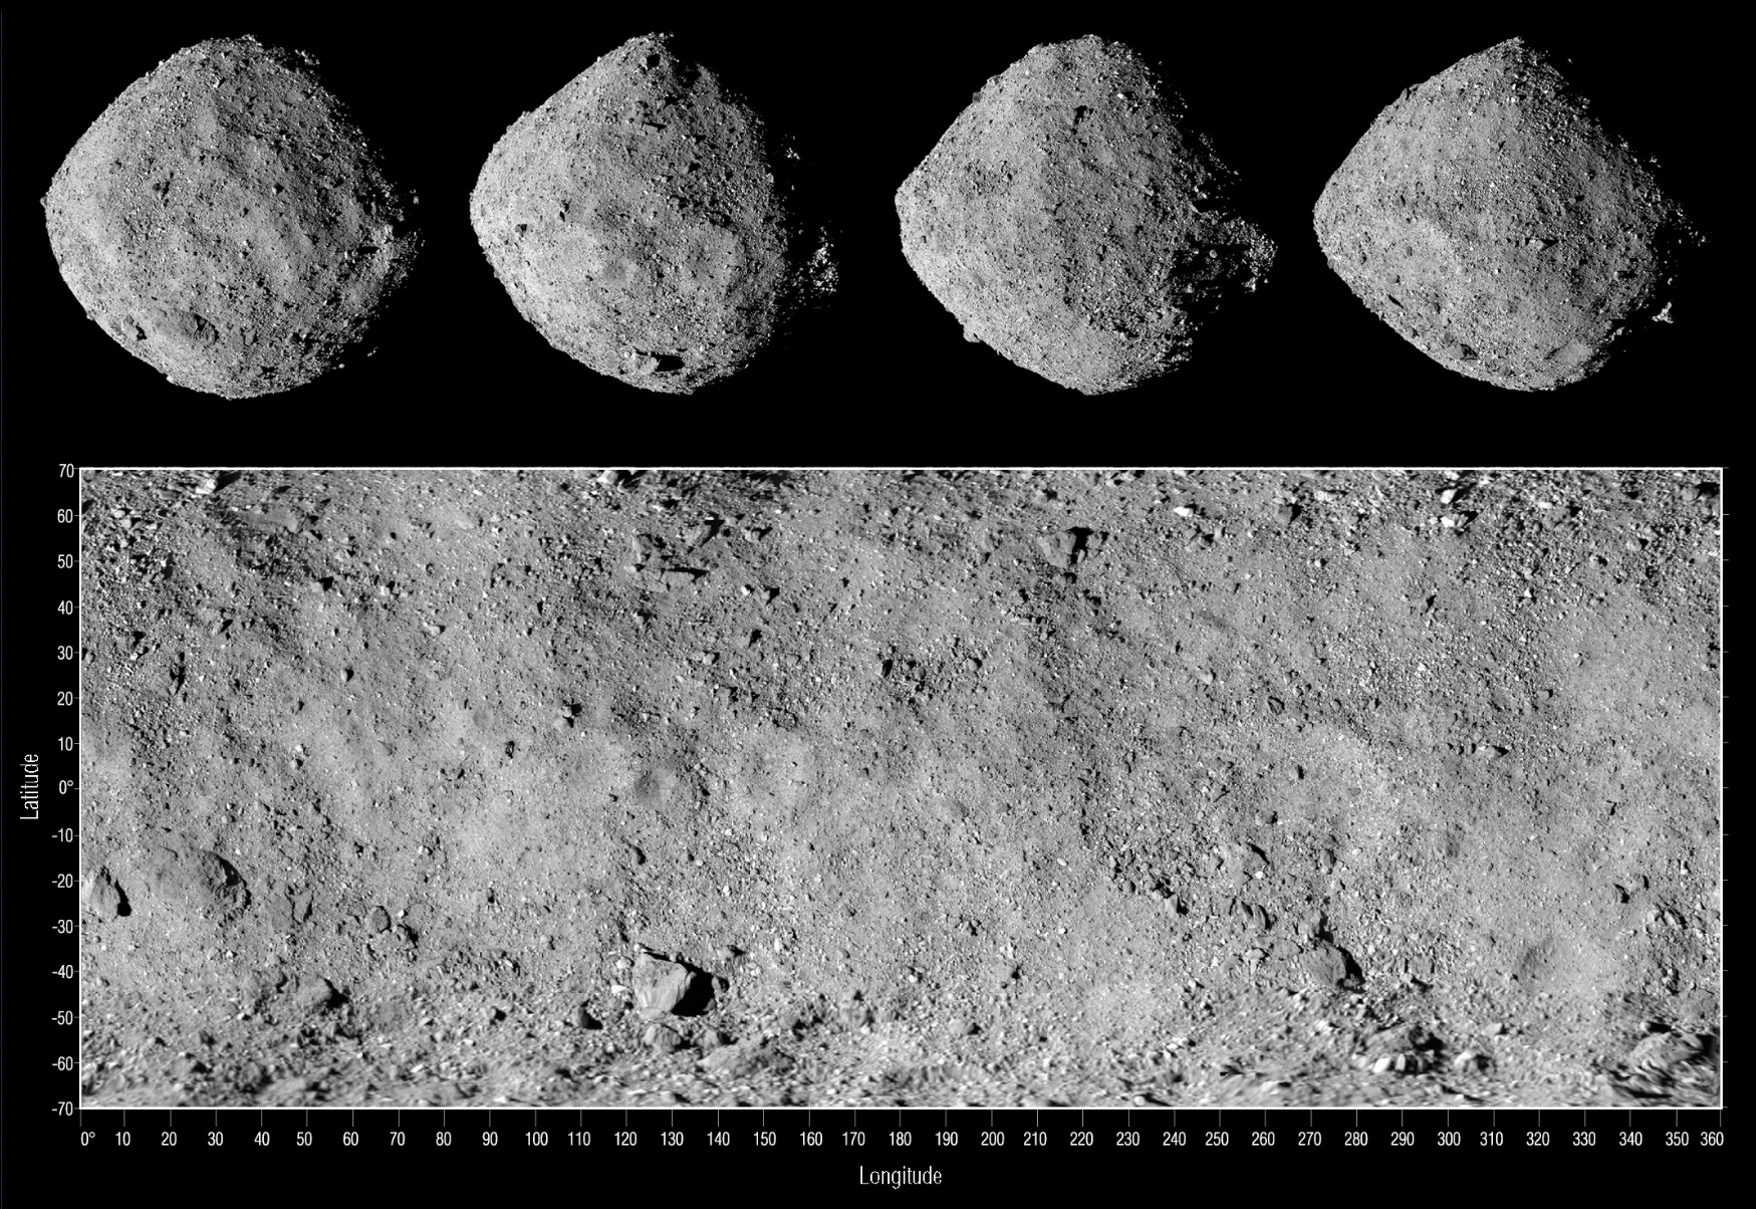 Multiple views showing the boulder-covered surface of asteroid Bennu.